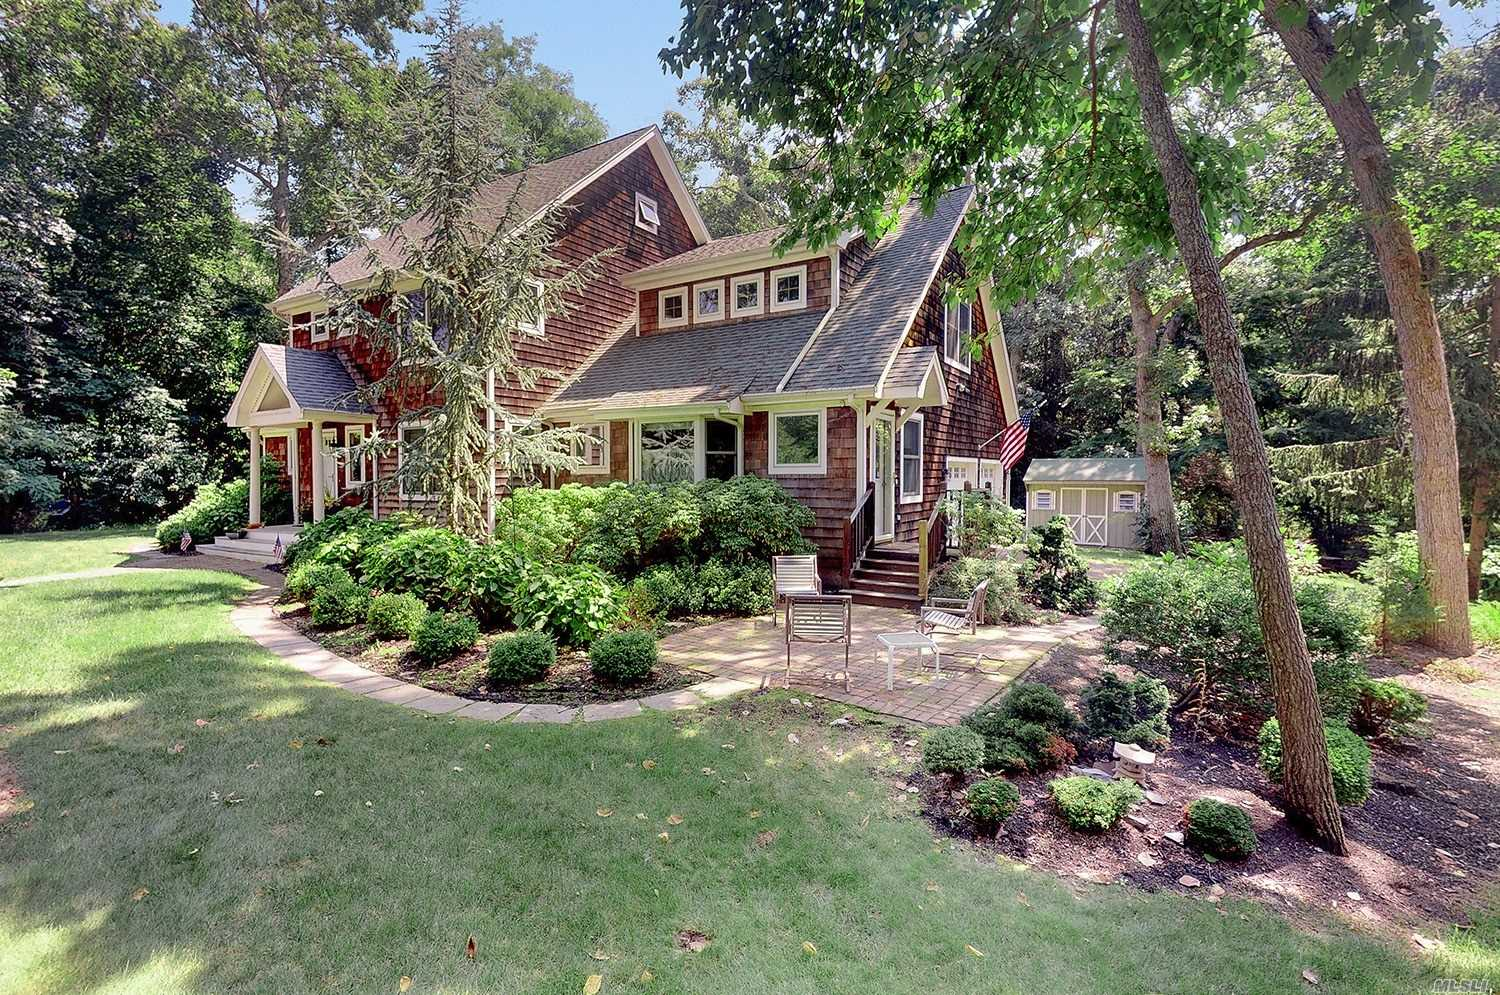 Gorgeous Nantucket Shingle Style Home On Fleets Neck. Walk To East Creek. Privacy, Room For Pool, Many Guests And The Entire Family! 4 Bedrooms, 3.5 Baths, Lr, Dr, Bonus Entertainment Room, Finished Basement. Hardwood Floors, Updated Kitchen, The List Goes On! Perfect Country Retreat Or Primary Home. Enjoy The North Fork Year Round!